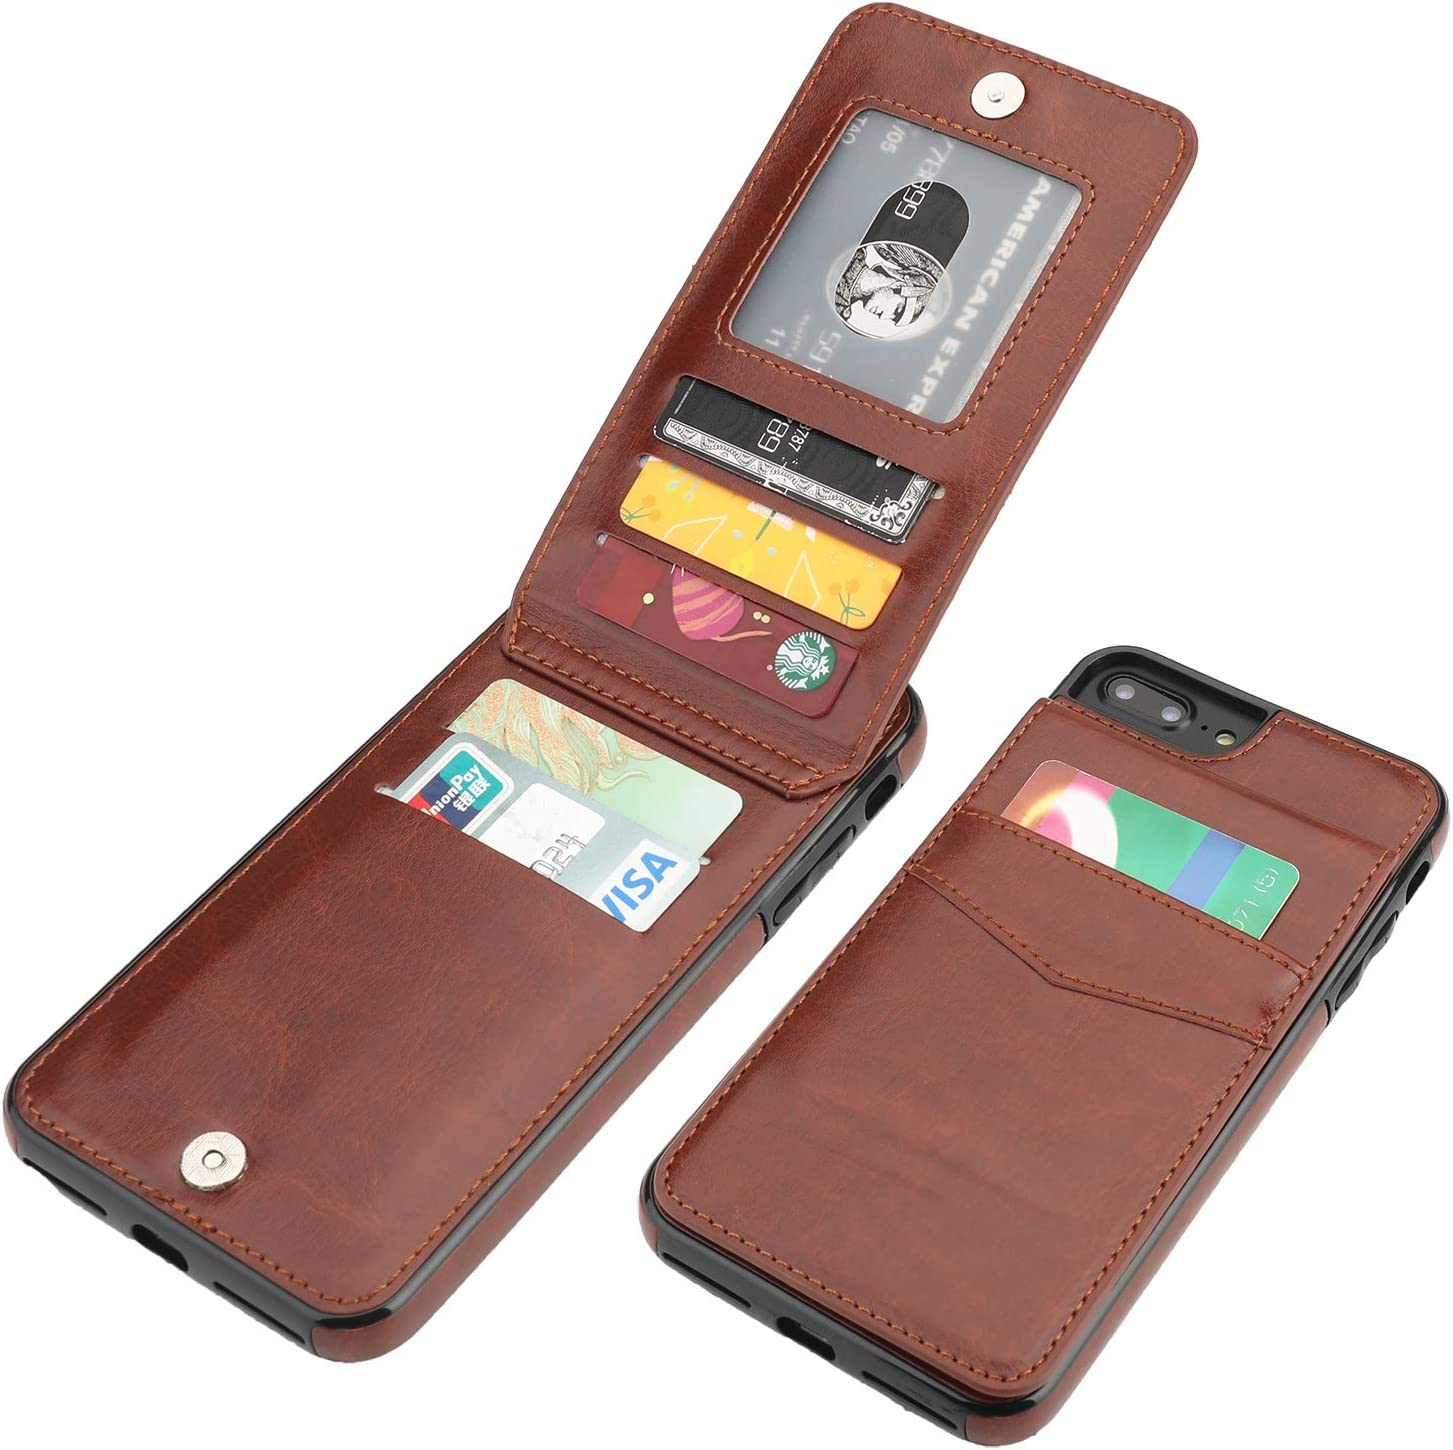 KIHUWEY iPhone 7 Plus iPhone 8 Plus Case Wallet with Credit Card Holder, Premium Leather Magnetic Clasp Kickstand Heavy Duty Protective Cover for iPhone 7/8 Plus 5.5 Inch(Brown)